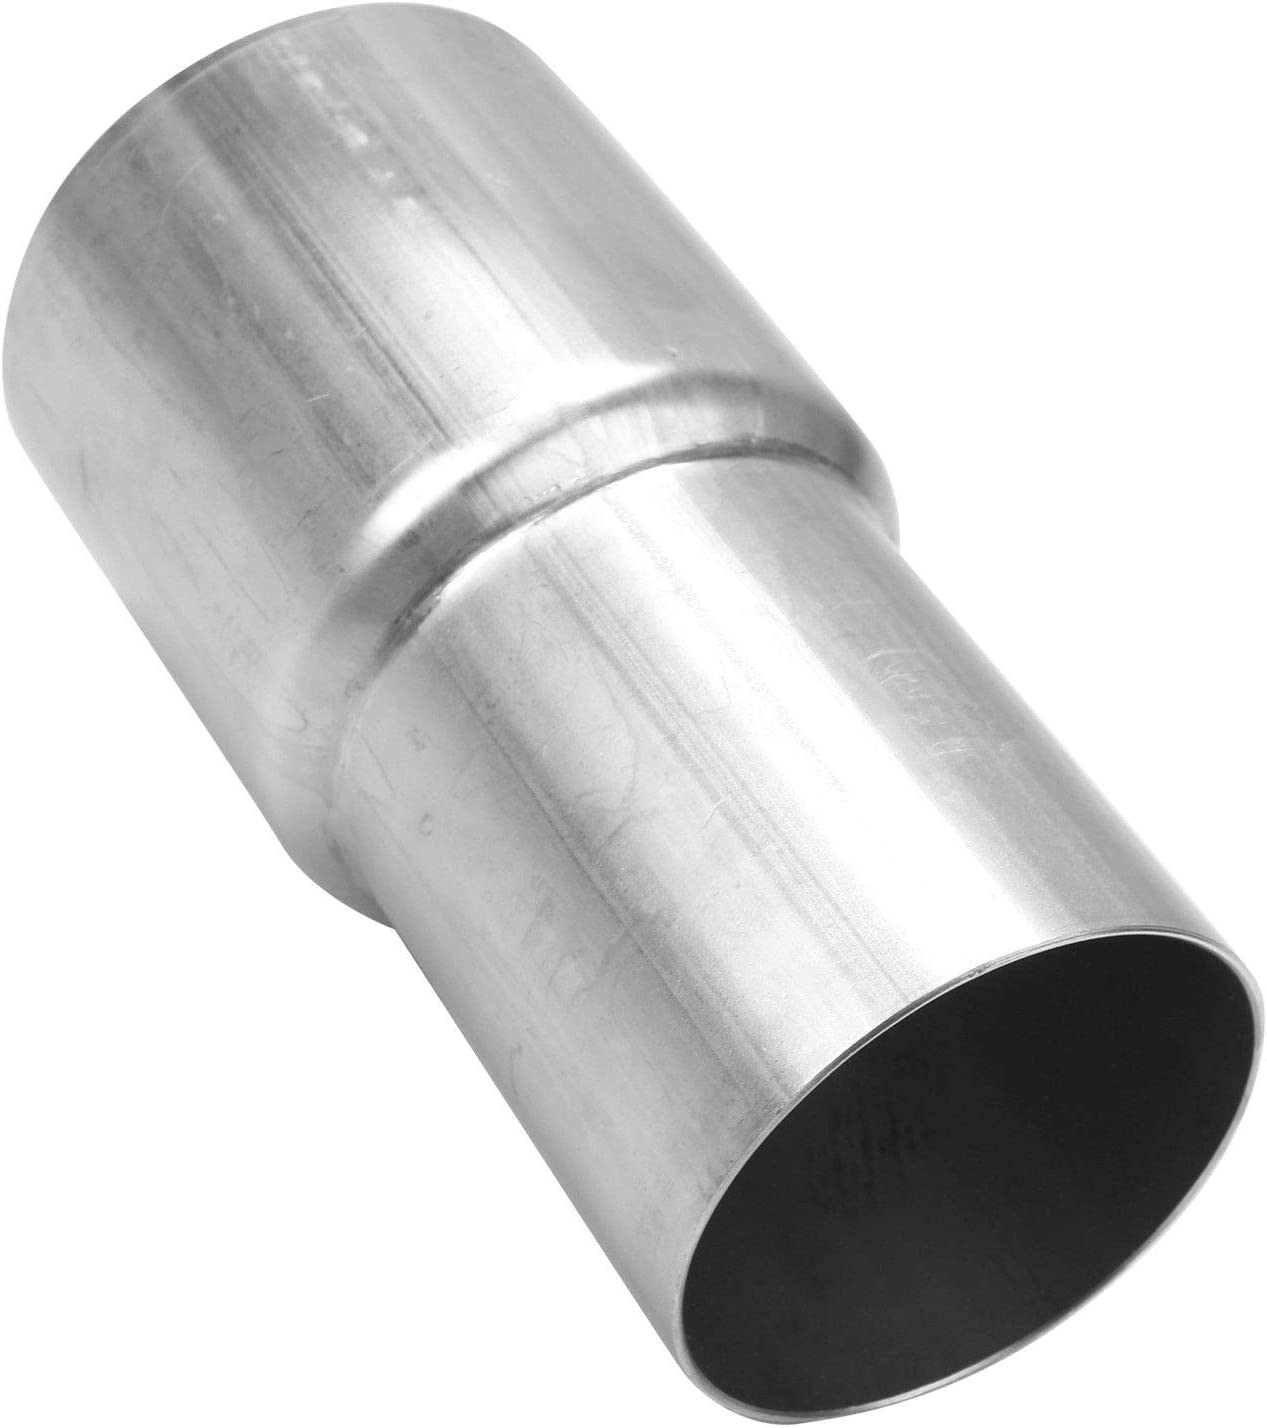 ILS 2.5inch 63mm to 3inch 76mm OD Stainless Steel Weldable Exhaust Muffler Pipe Reducer Adapter